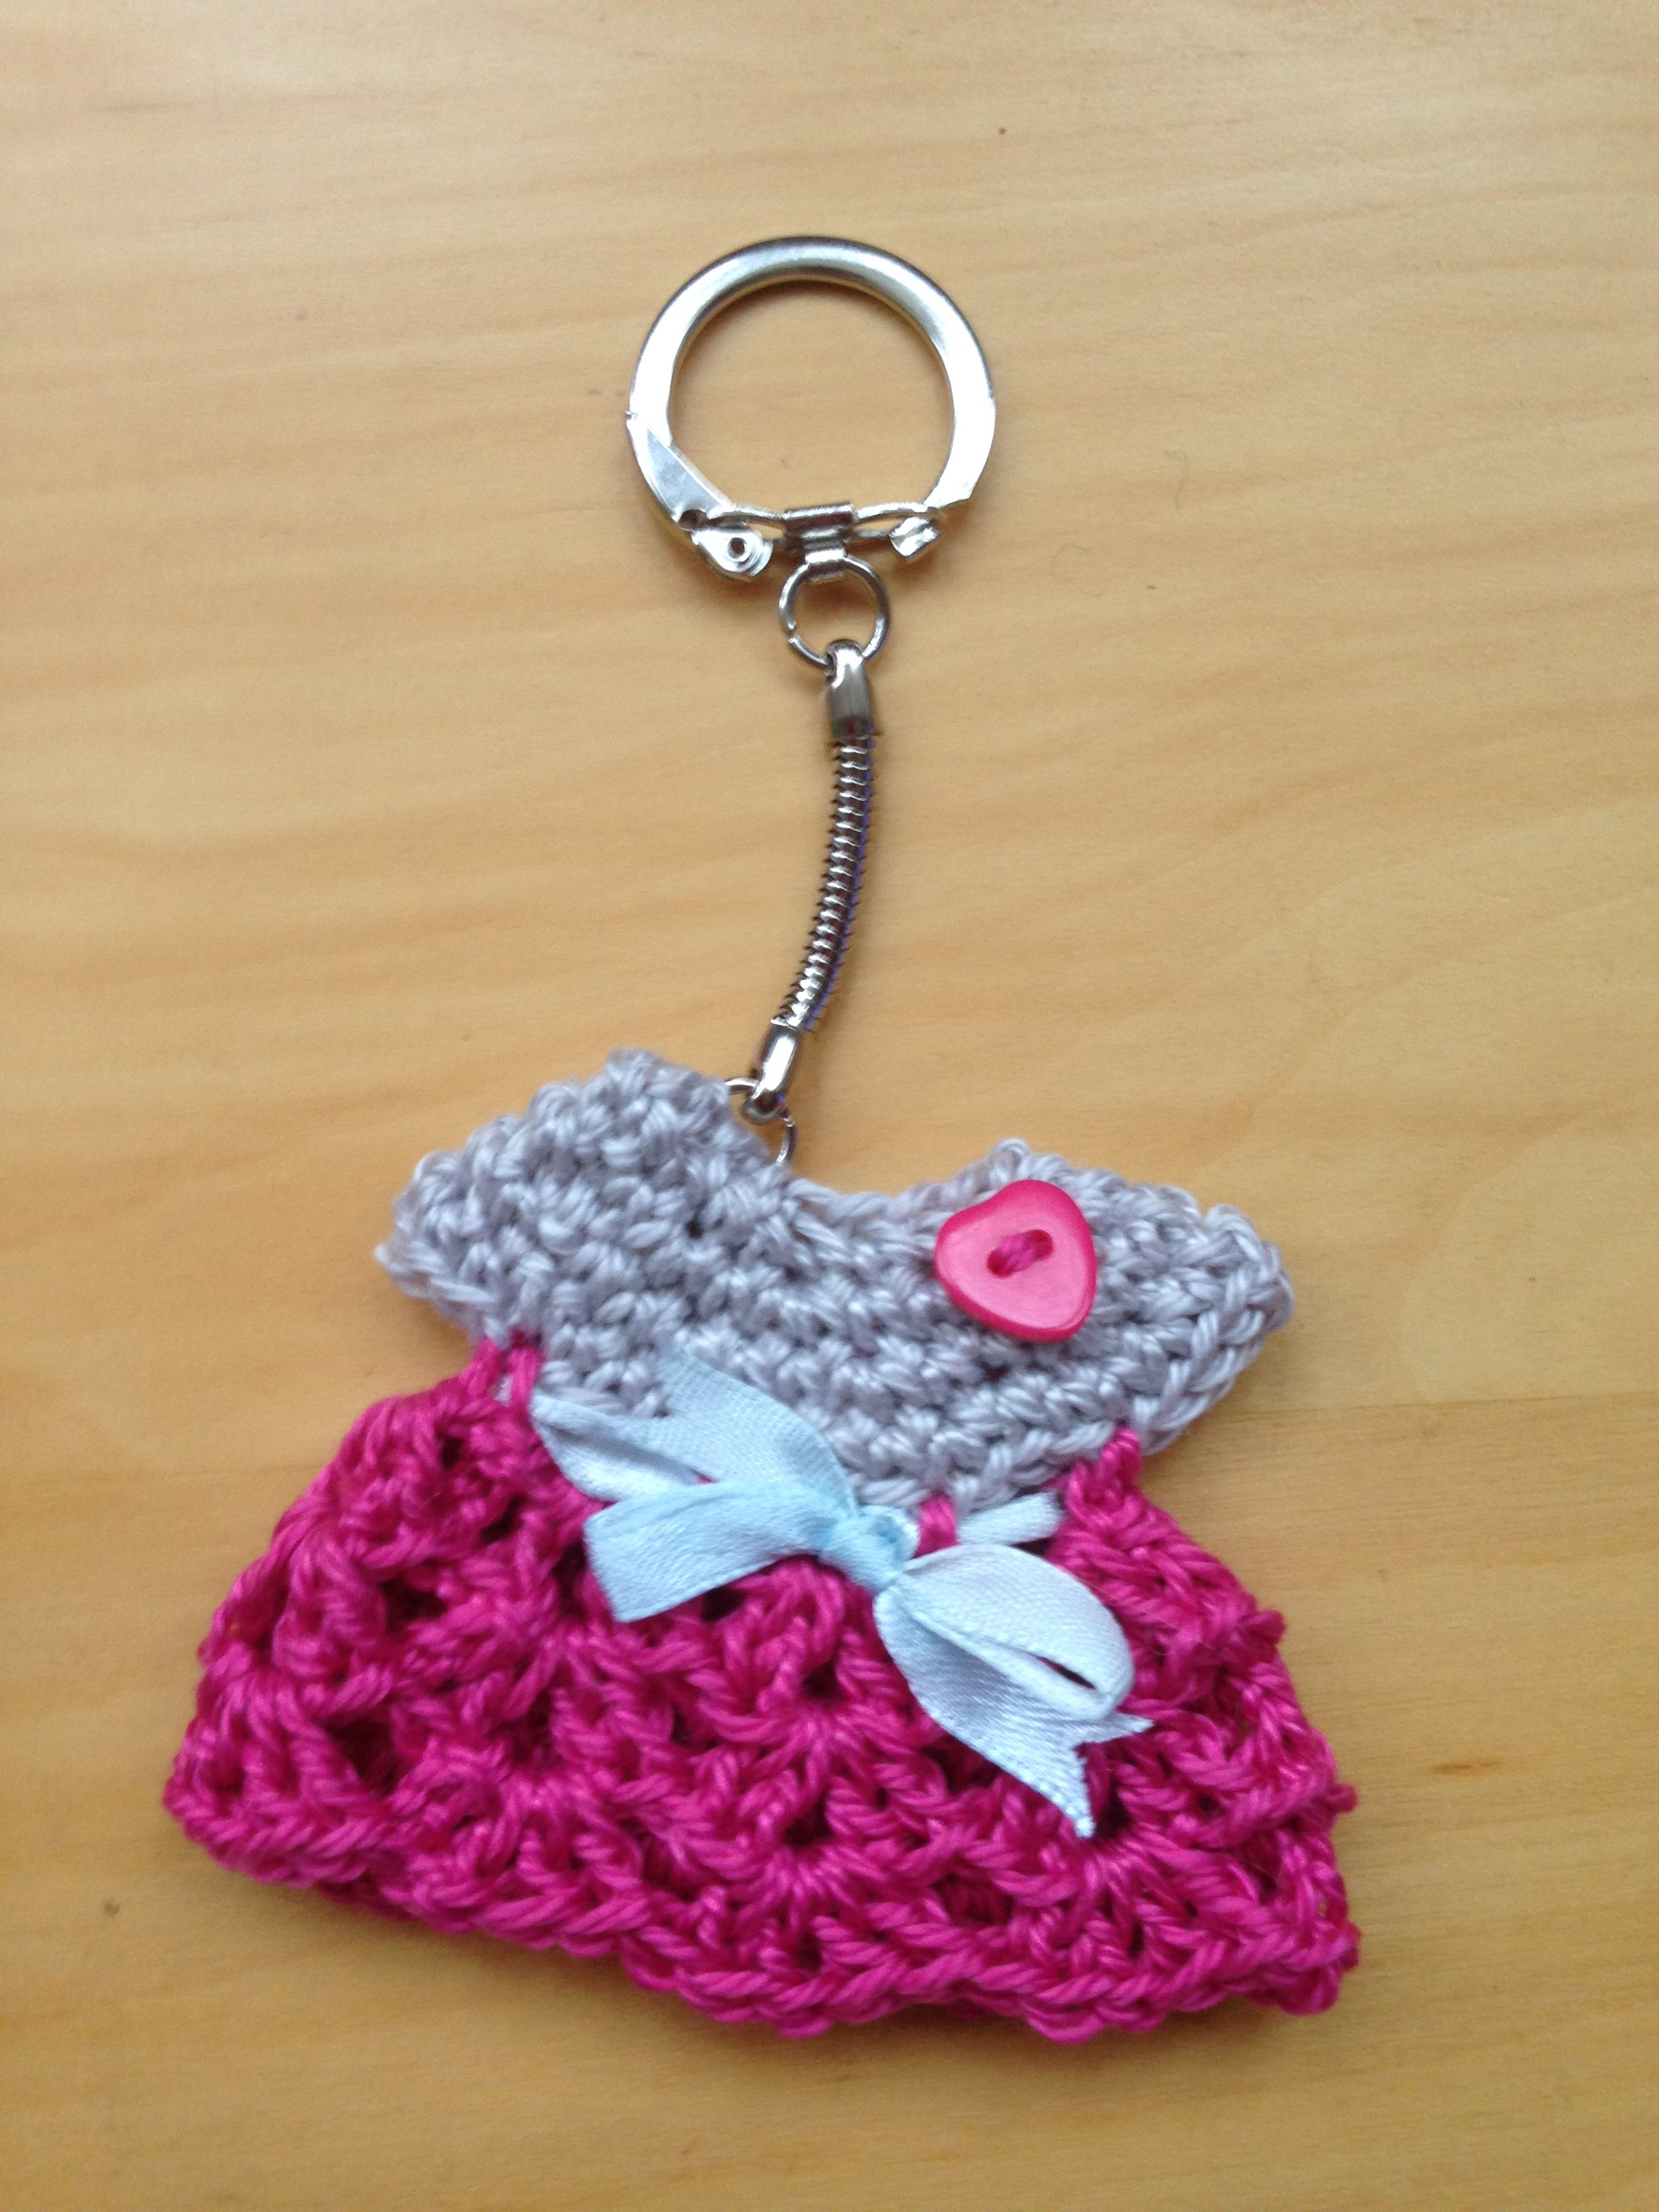 150 Dress keyring